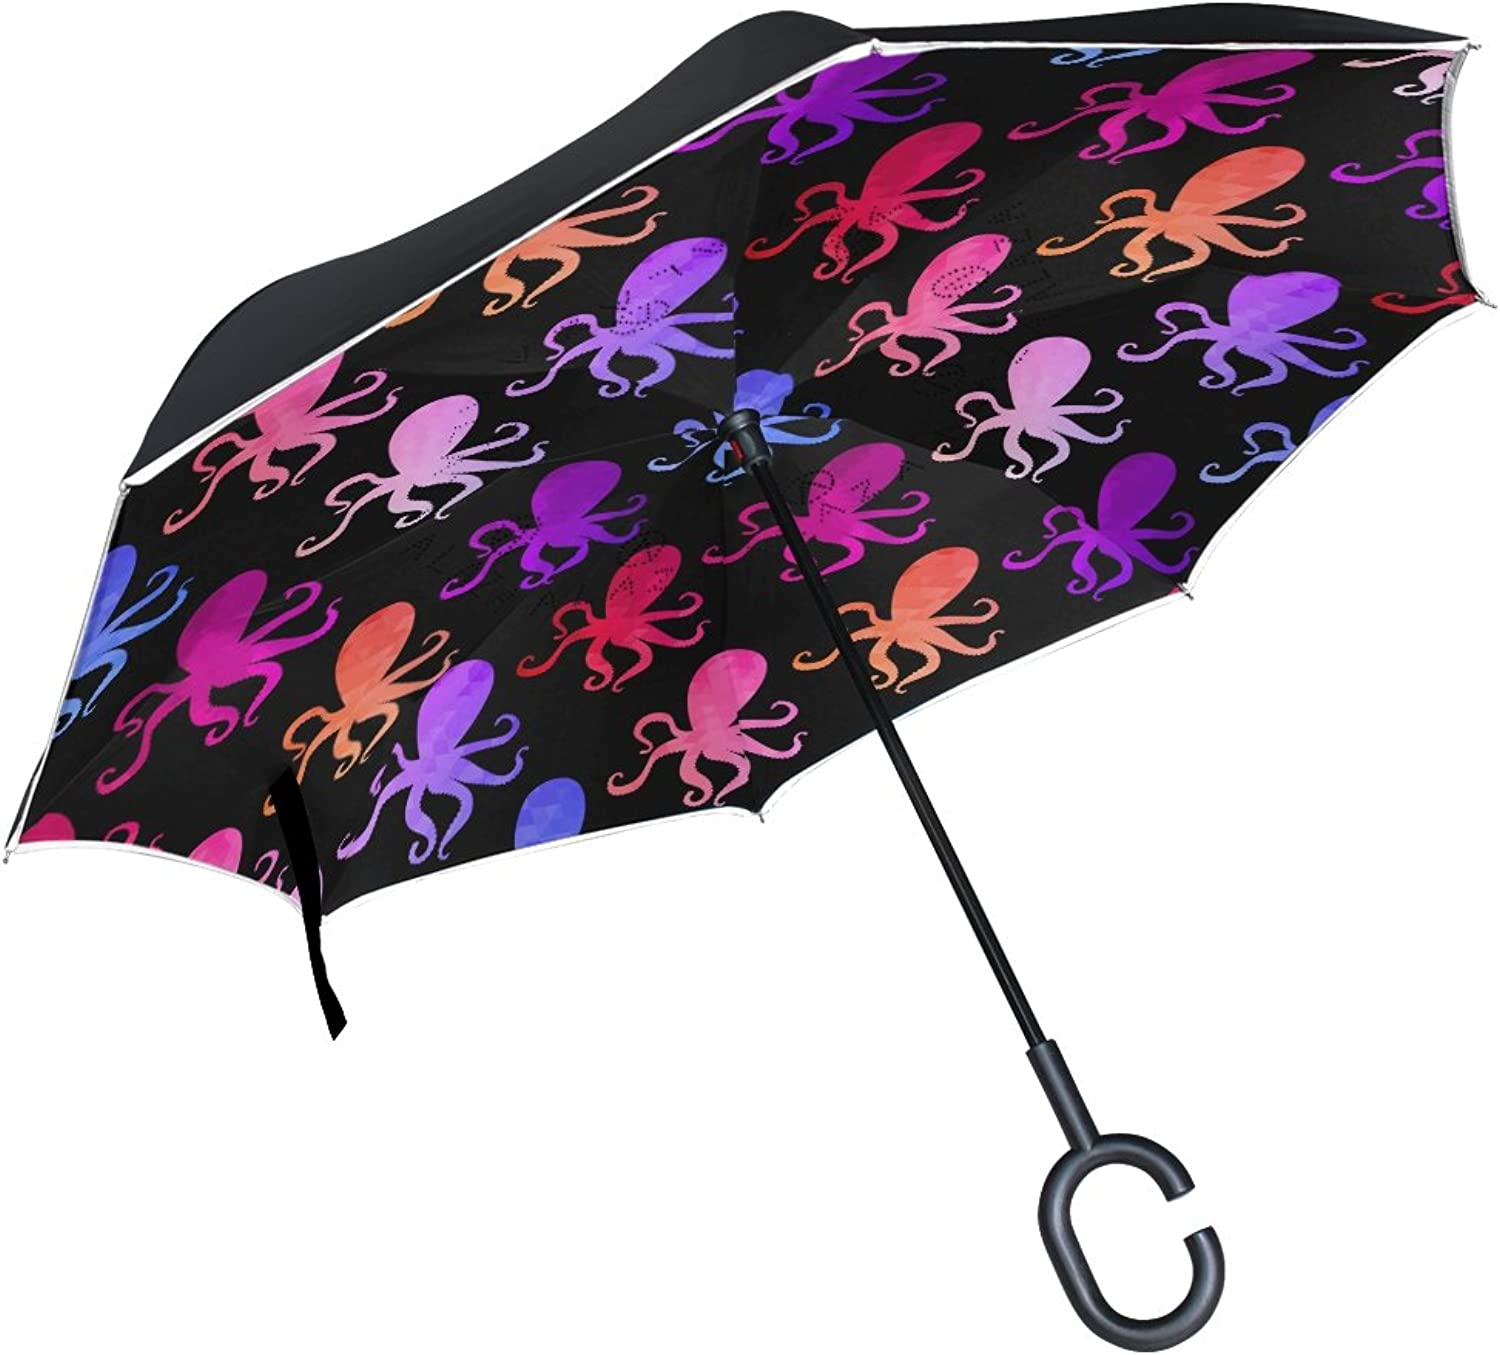 LAVOVO Octopus And Fishes Ingreened Double Layer Windproof Straight Umbrellas InsideOut Folding Umbrella with CShaped Handle for Car Use